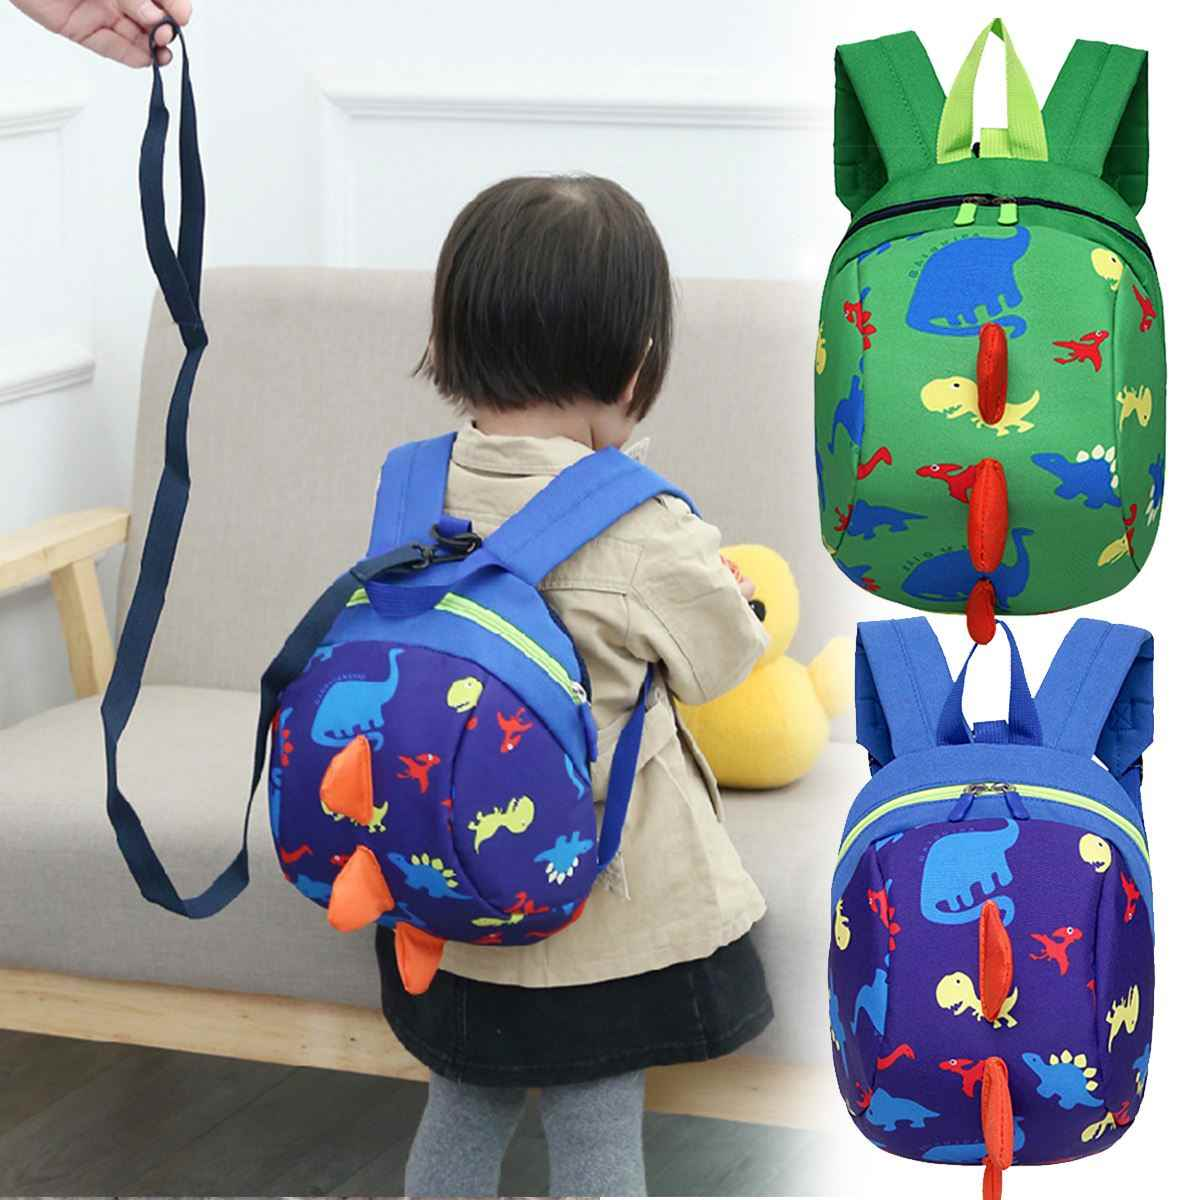 502a725b0677 Baby Backpack Walking Safety Harness Kid Link Traction Rope Dinosaur  Toddler Anti-Lost Leash Bag Strap Rein Cartoon Bag